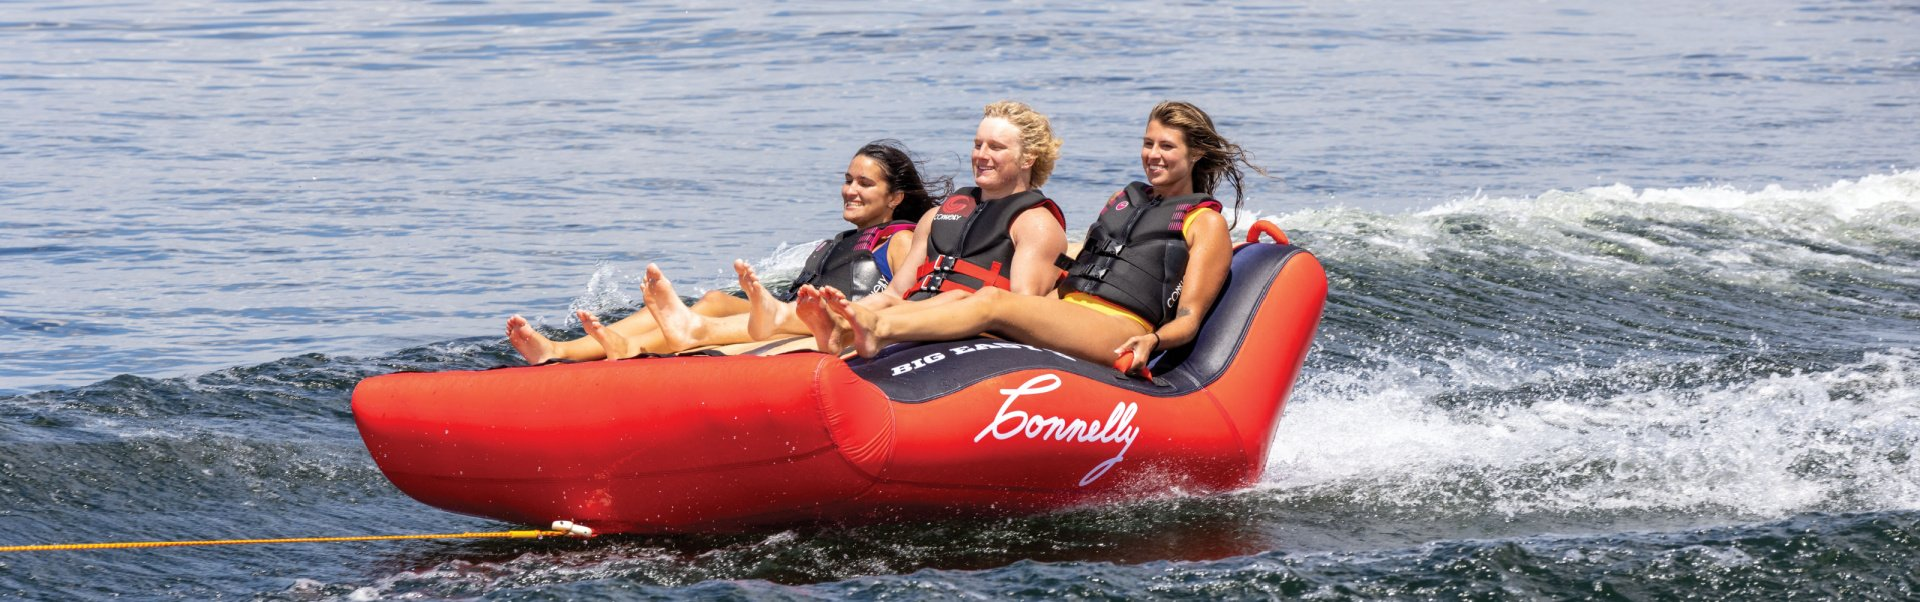 Tubing Action Extreme Shot Banner